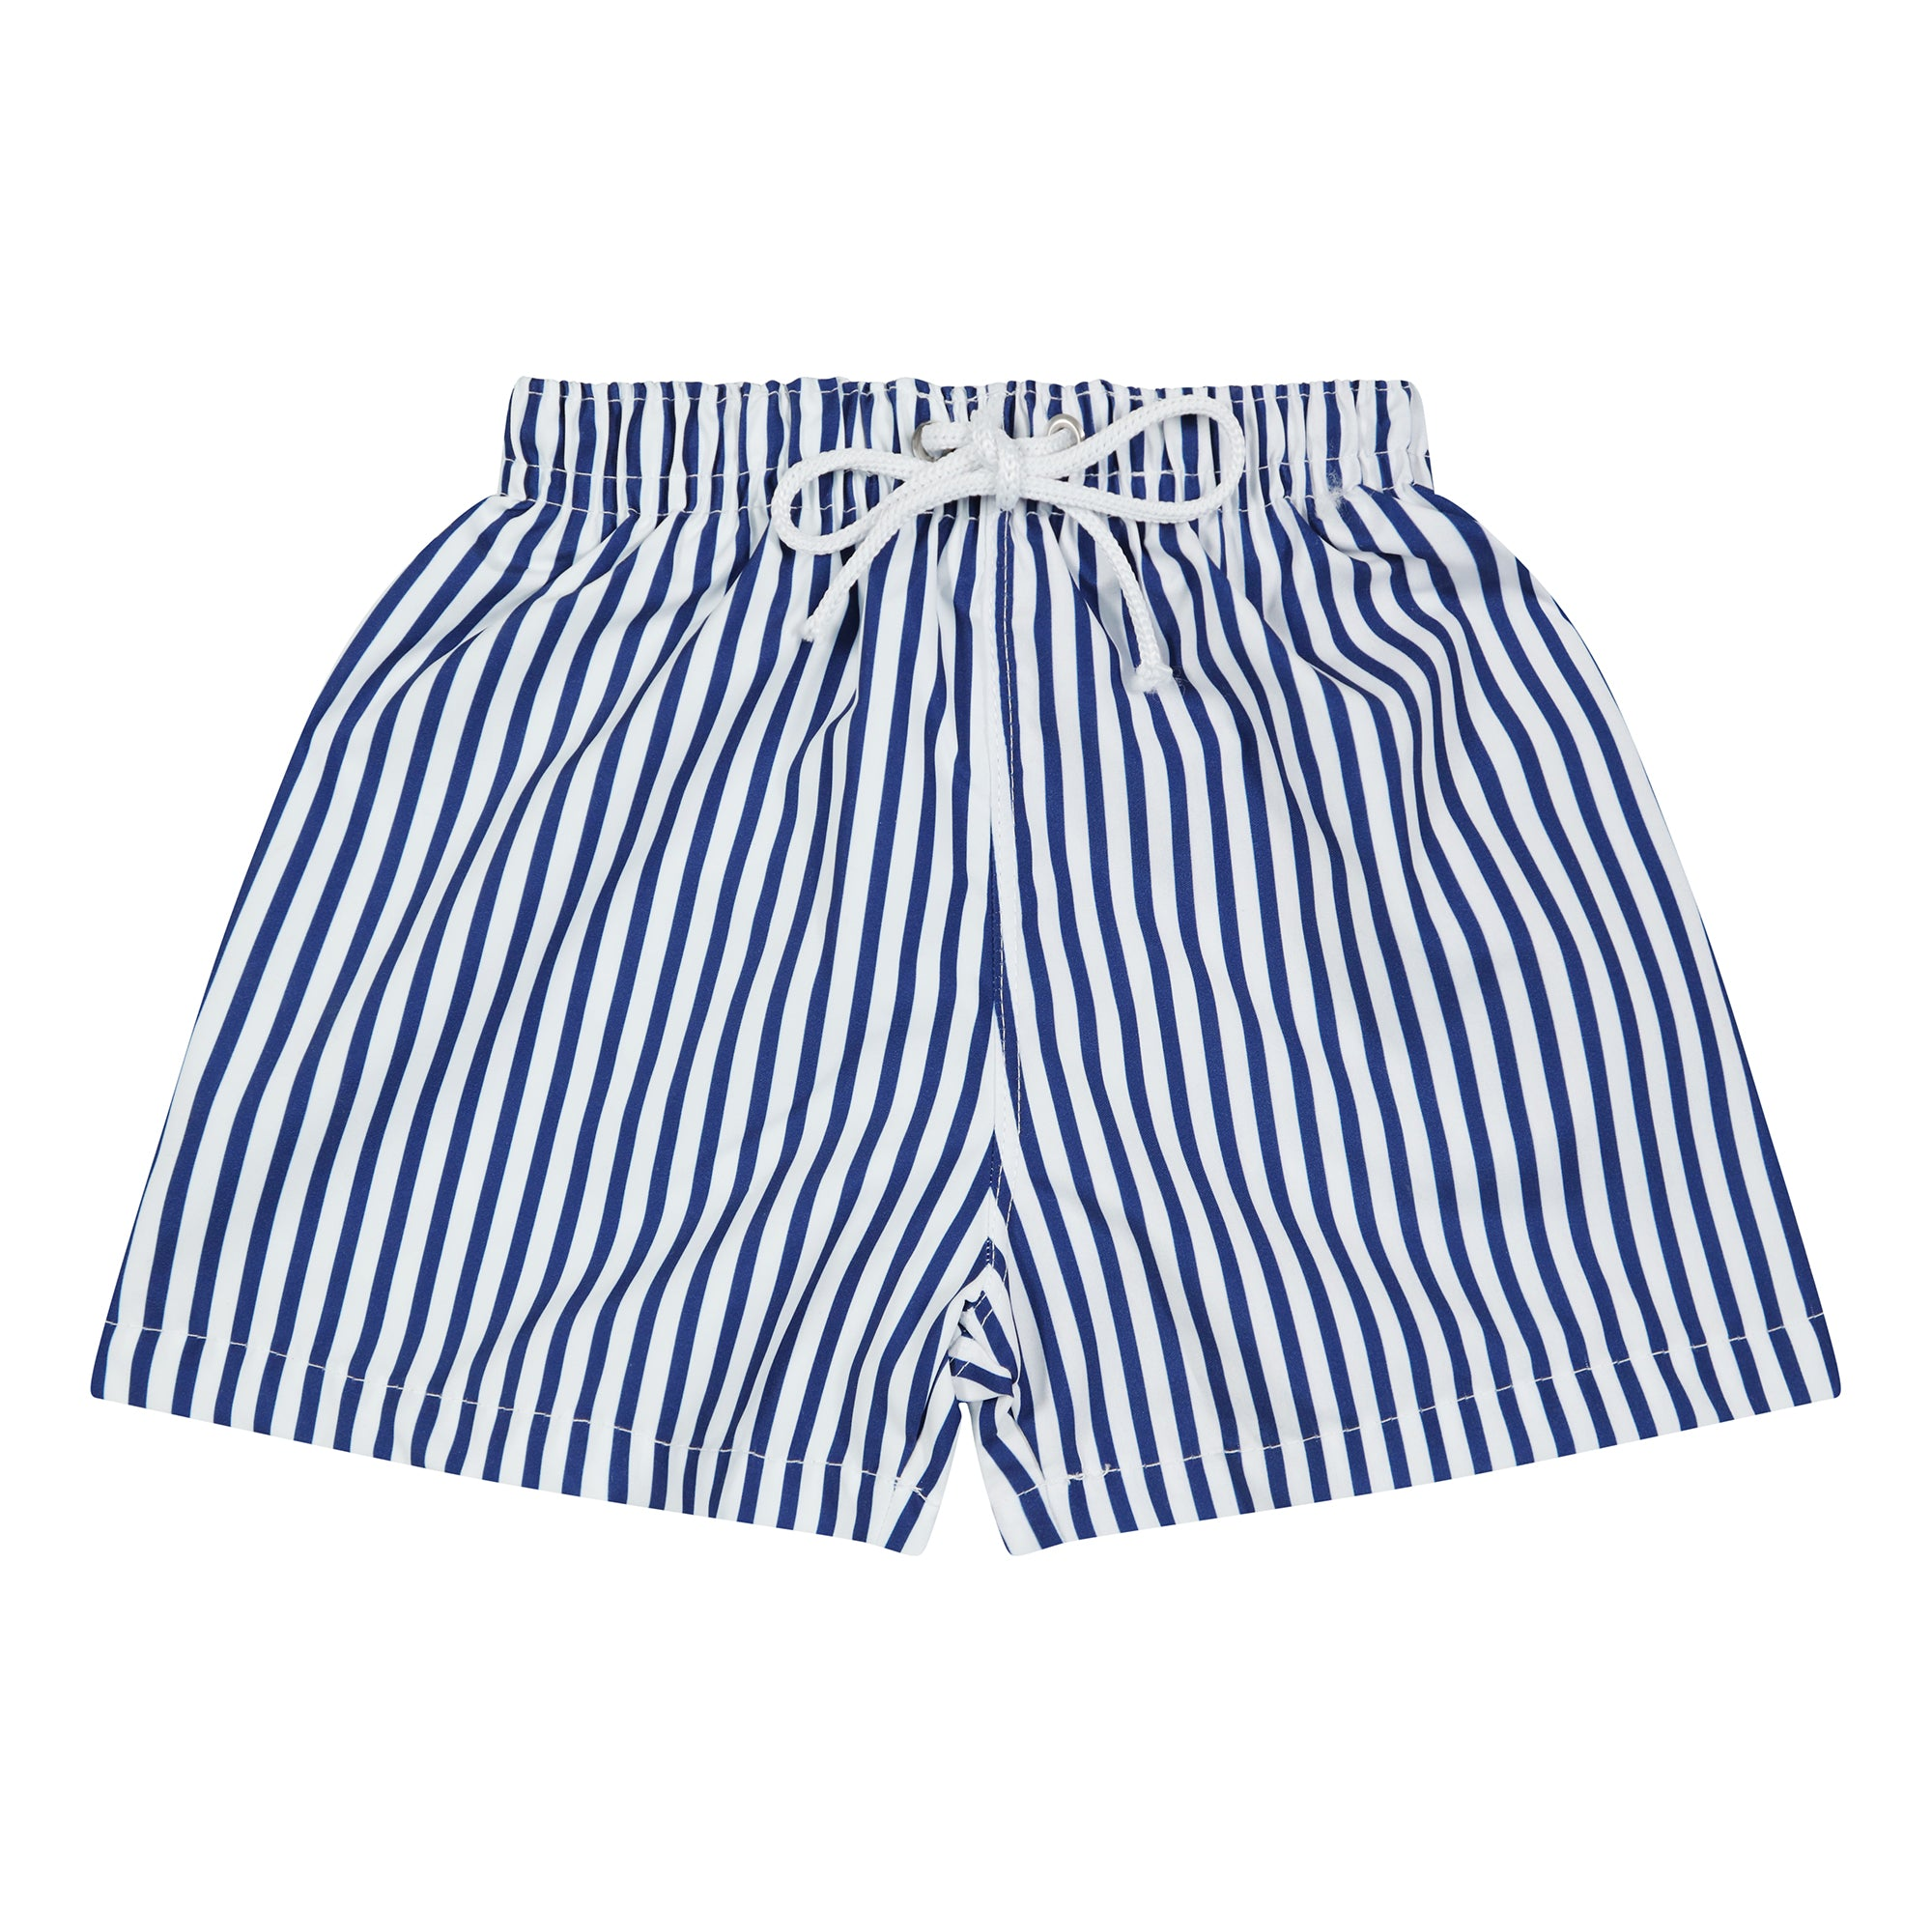 Maldivas Nautical Stripe Surf Shorts